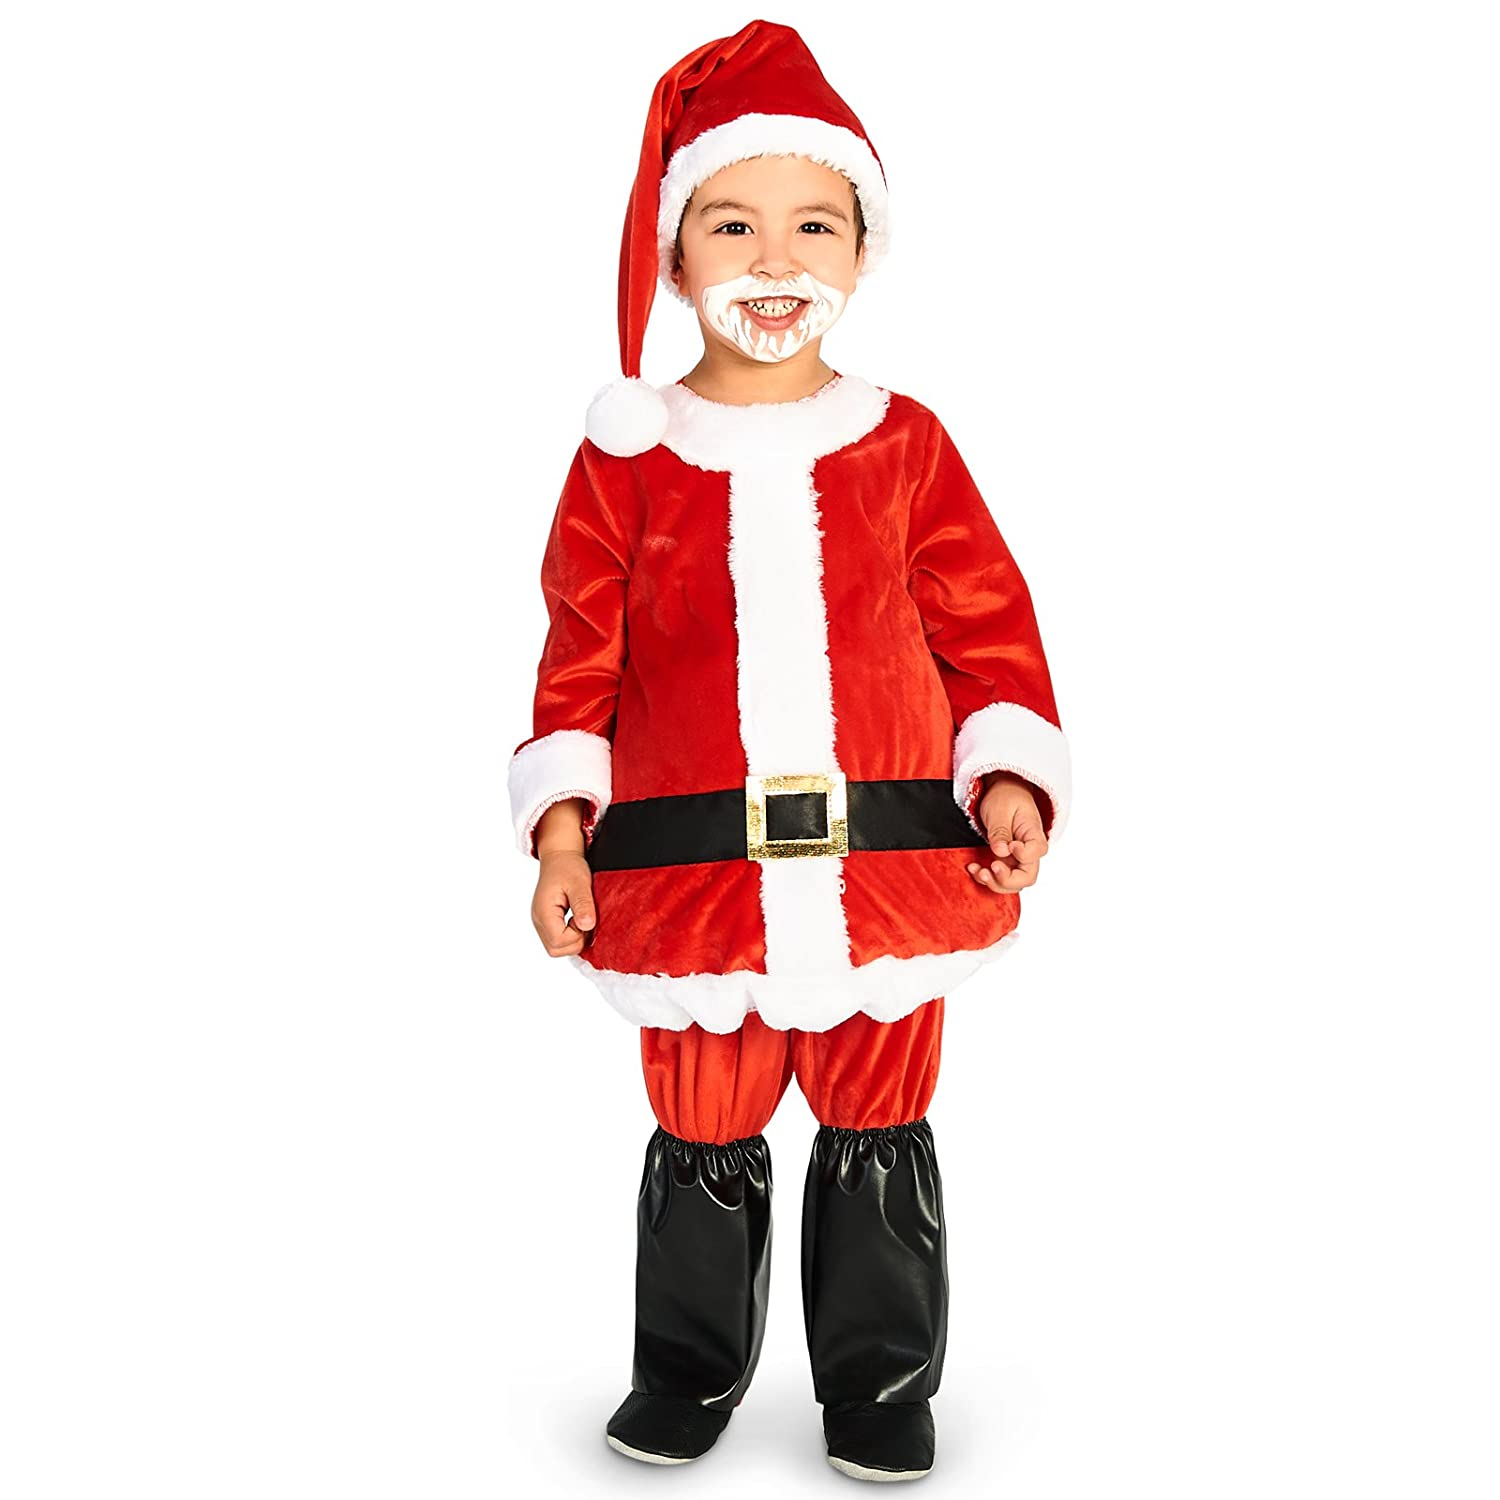 1d84fee5cfa9f Amazon.com  Leadtex - Jolly Belly Toddler Santa Suit - 2-4T  Clothing